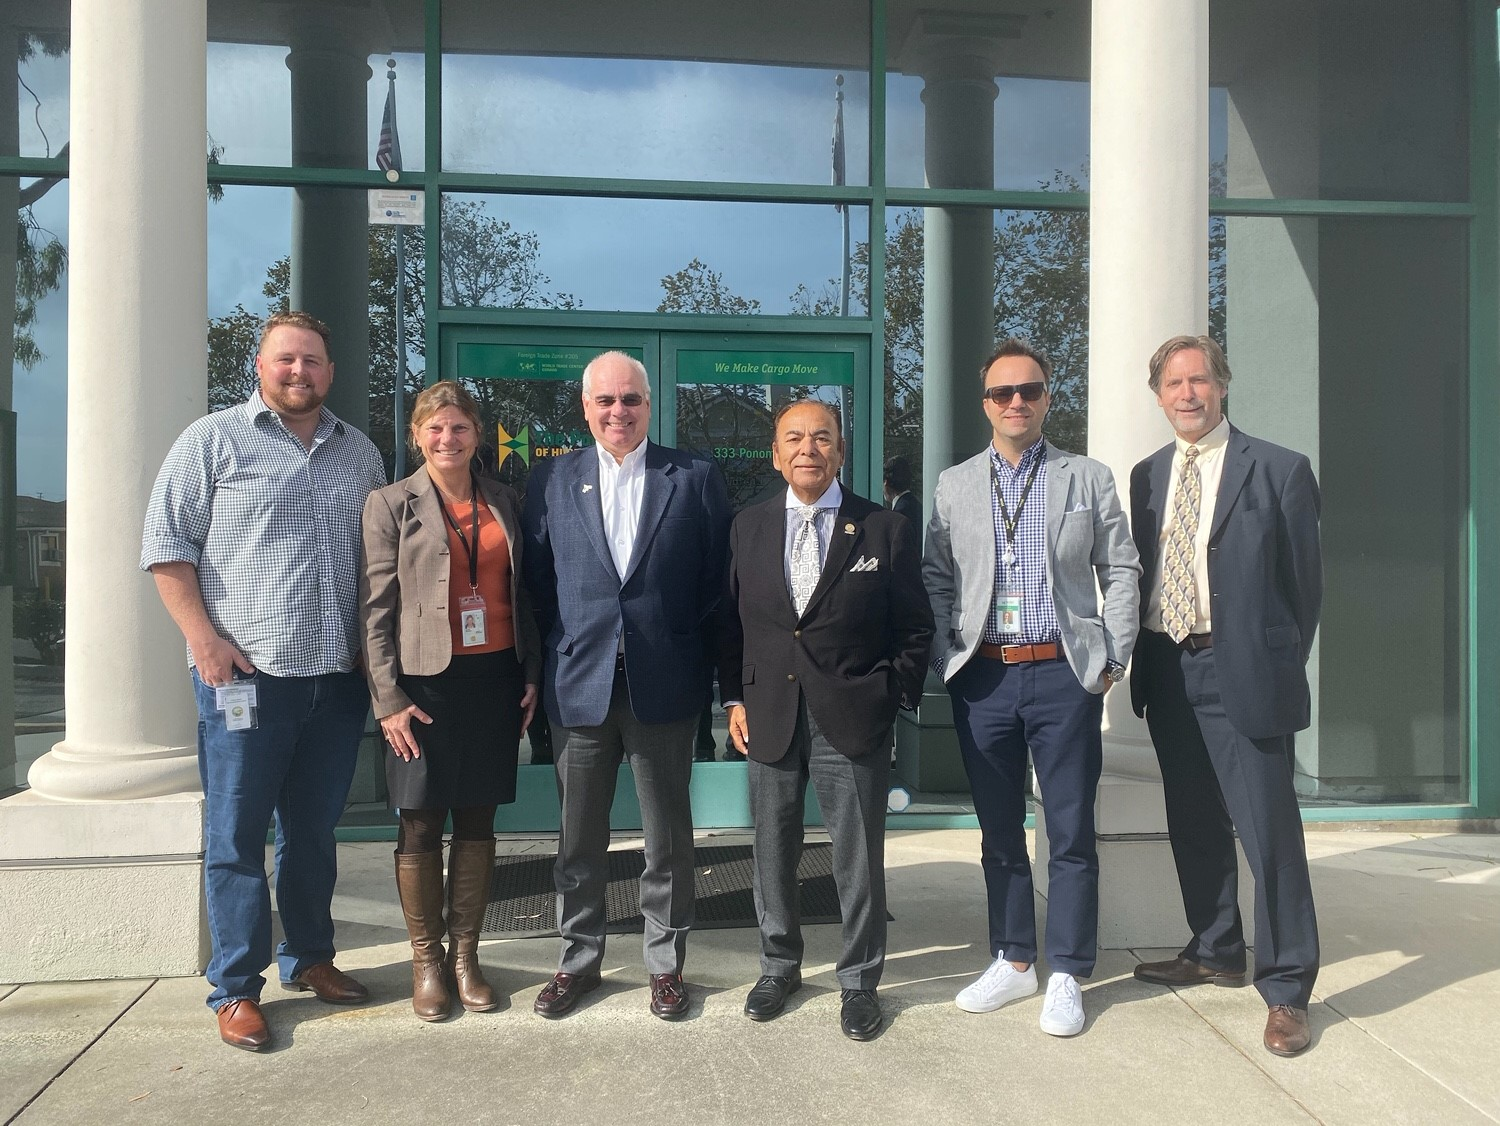 Pictured L to R: Port Public & Government Relations Manager Cam Spencer, CEO & Port Director Kristin Decas, GoBiz Director Lenny Mendonca Oxnard Harbor District President Jess Herrera, Port Environmental Manager Giles Pettifor, Economic Development Collaborative President and CEO Bruce Stenslie